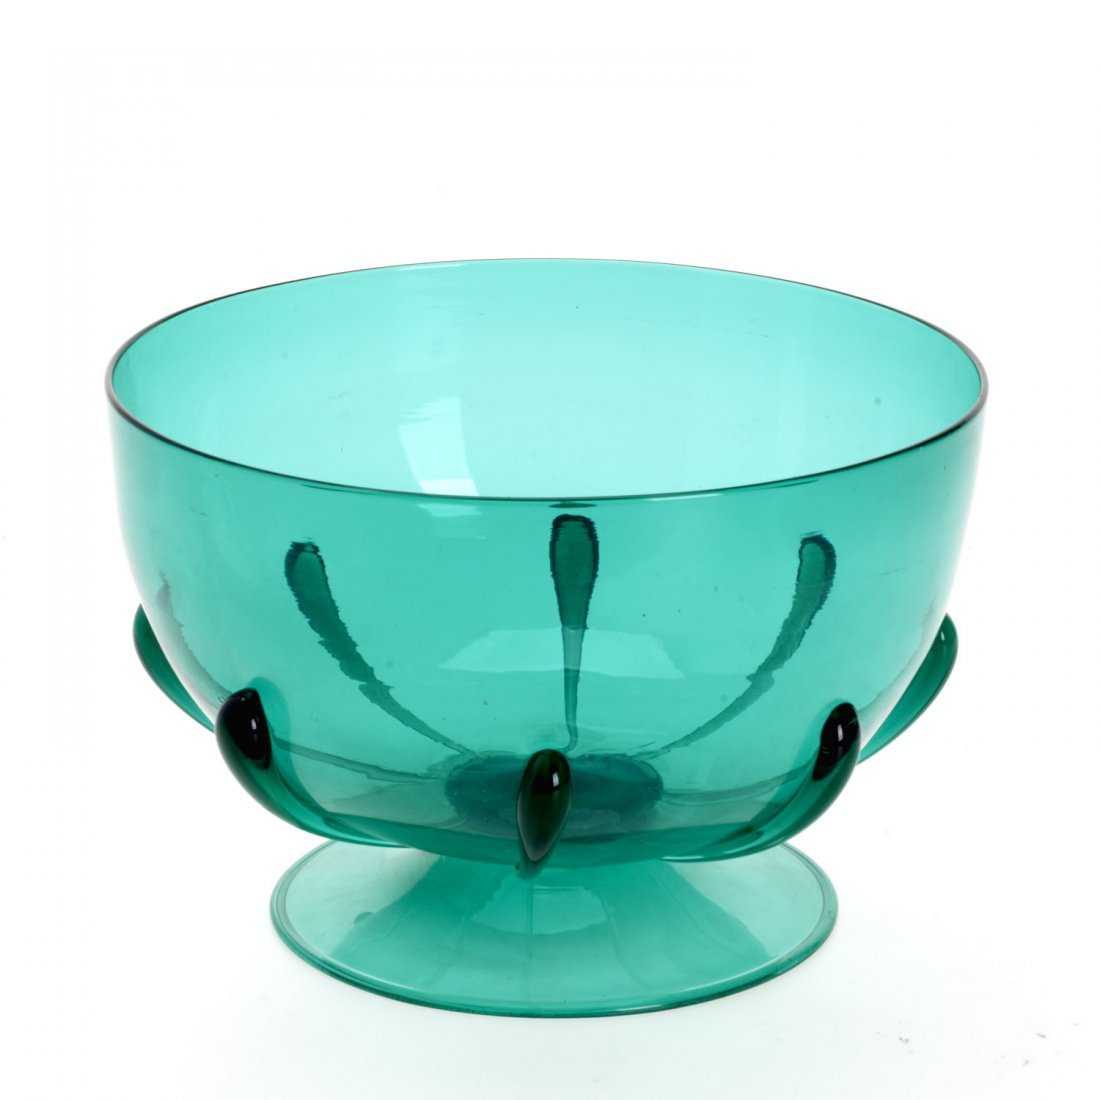 MVM Cappellin footed glass bowl